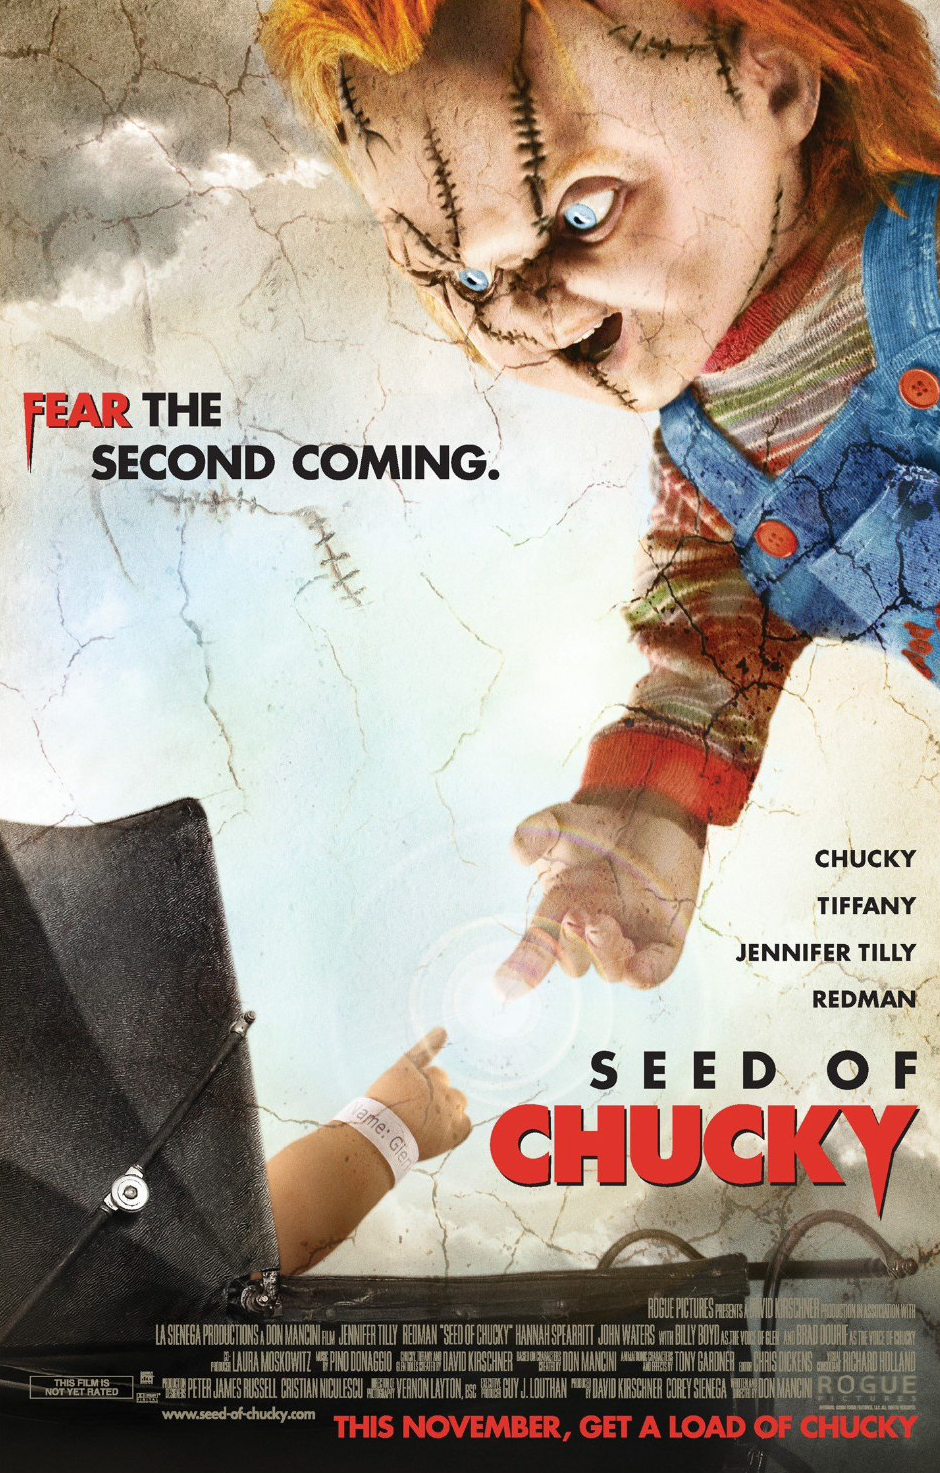 Seed of Chucky (2004) Chuck (Brad Dourif) and Tiff (Jennifer Tilly) return, resurrected by their son (Billy Boyd), and hit Hollywood in the fifth film of the CHILD'S PLAY series.